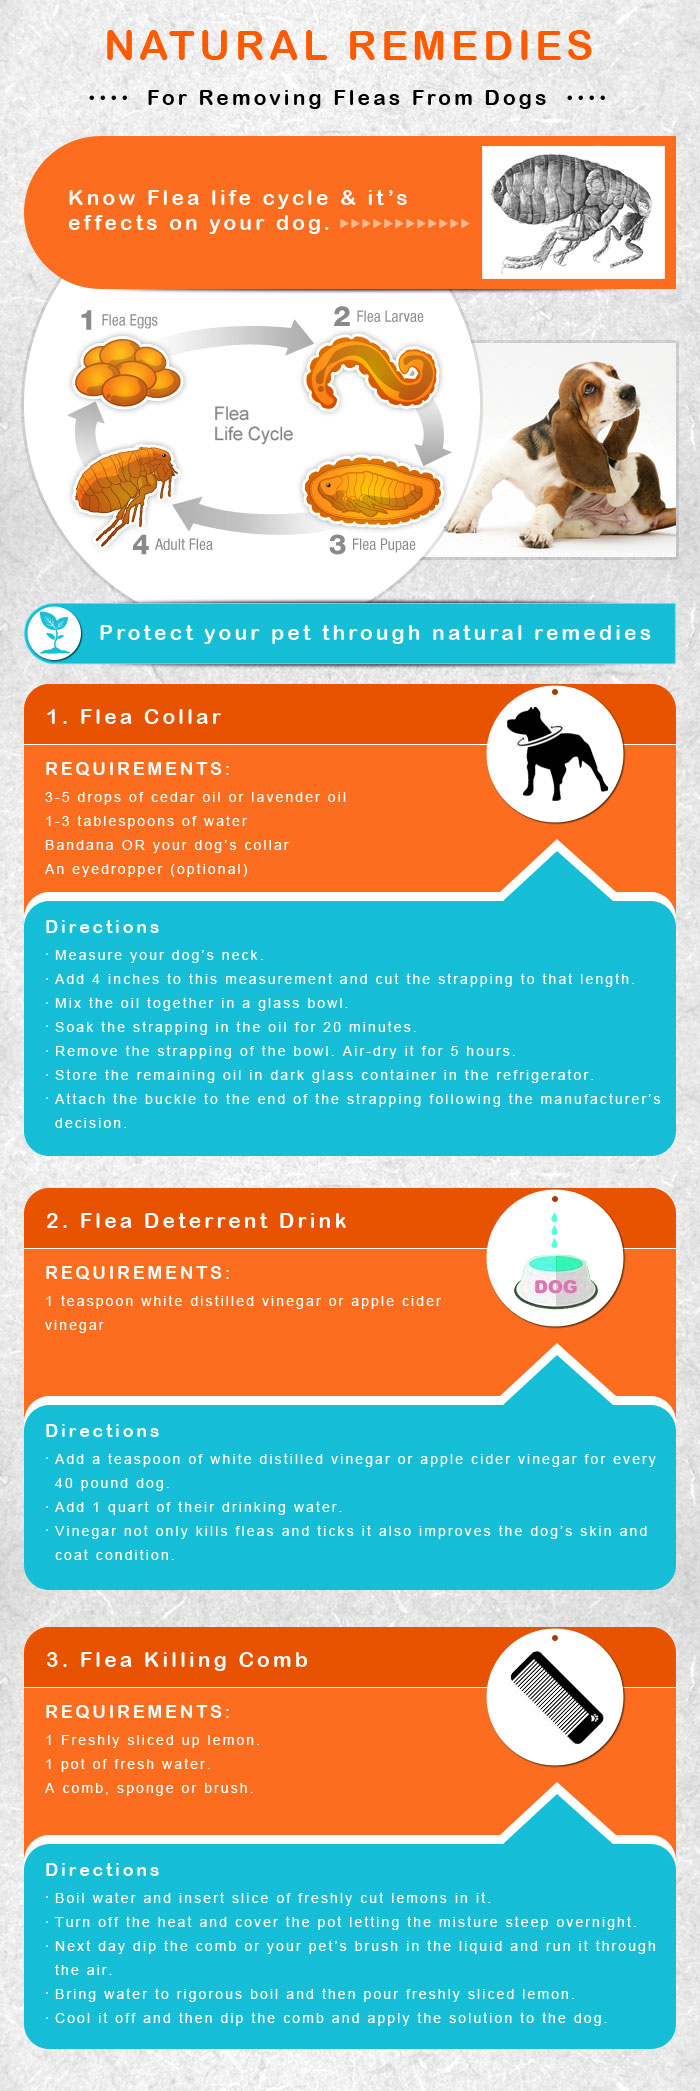 Natural Remedies for Removing Fleas from Dogs